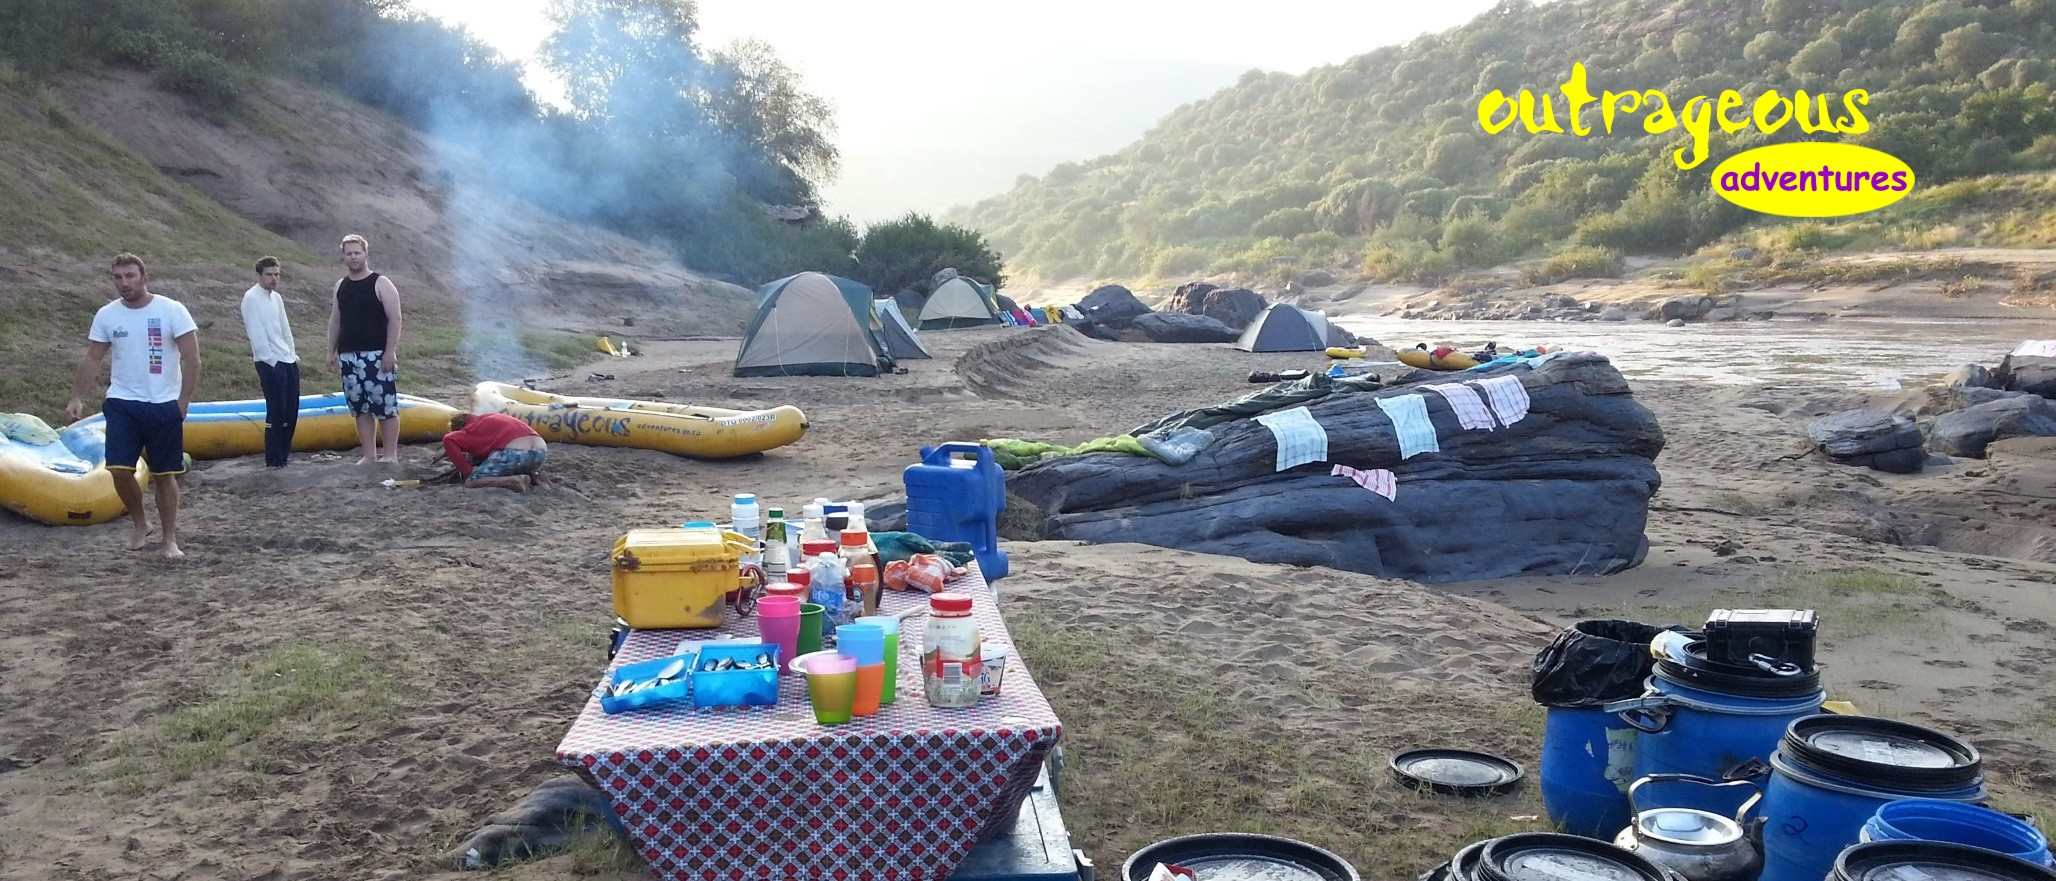 camping next to the Orange River on a multi-day rafting adventure.